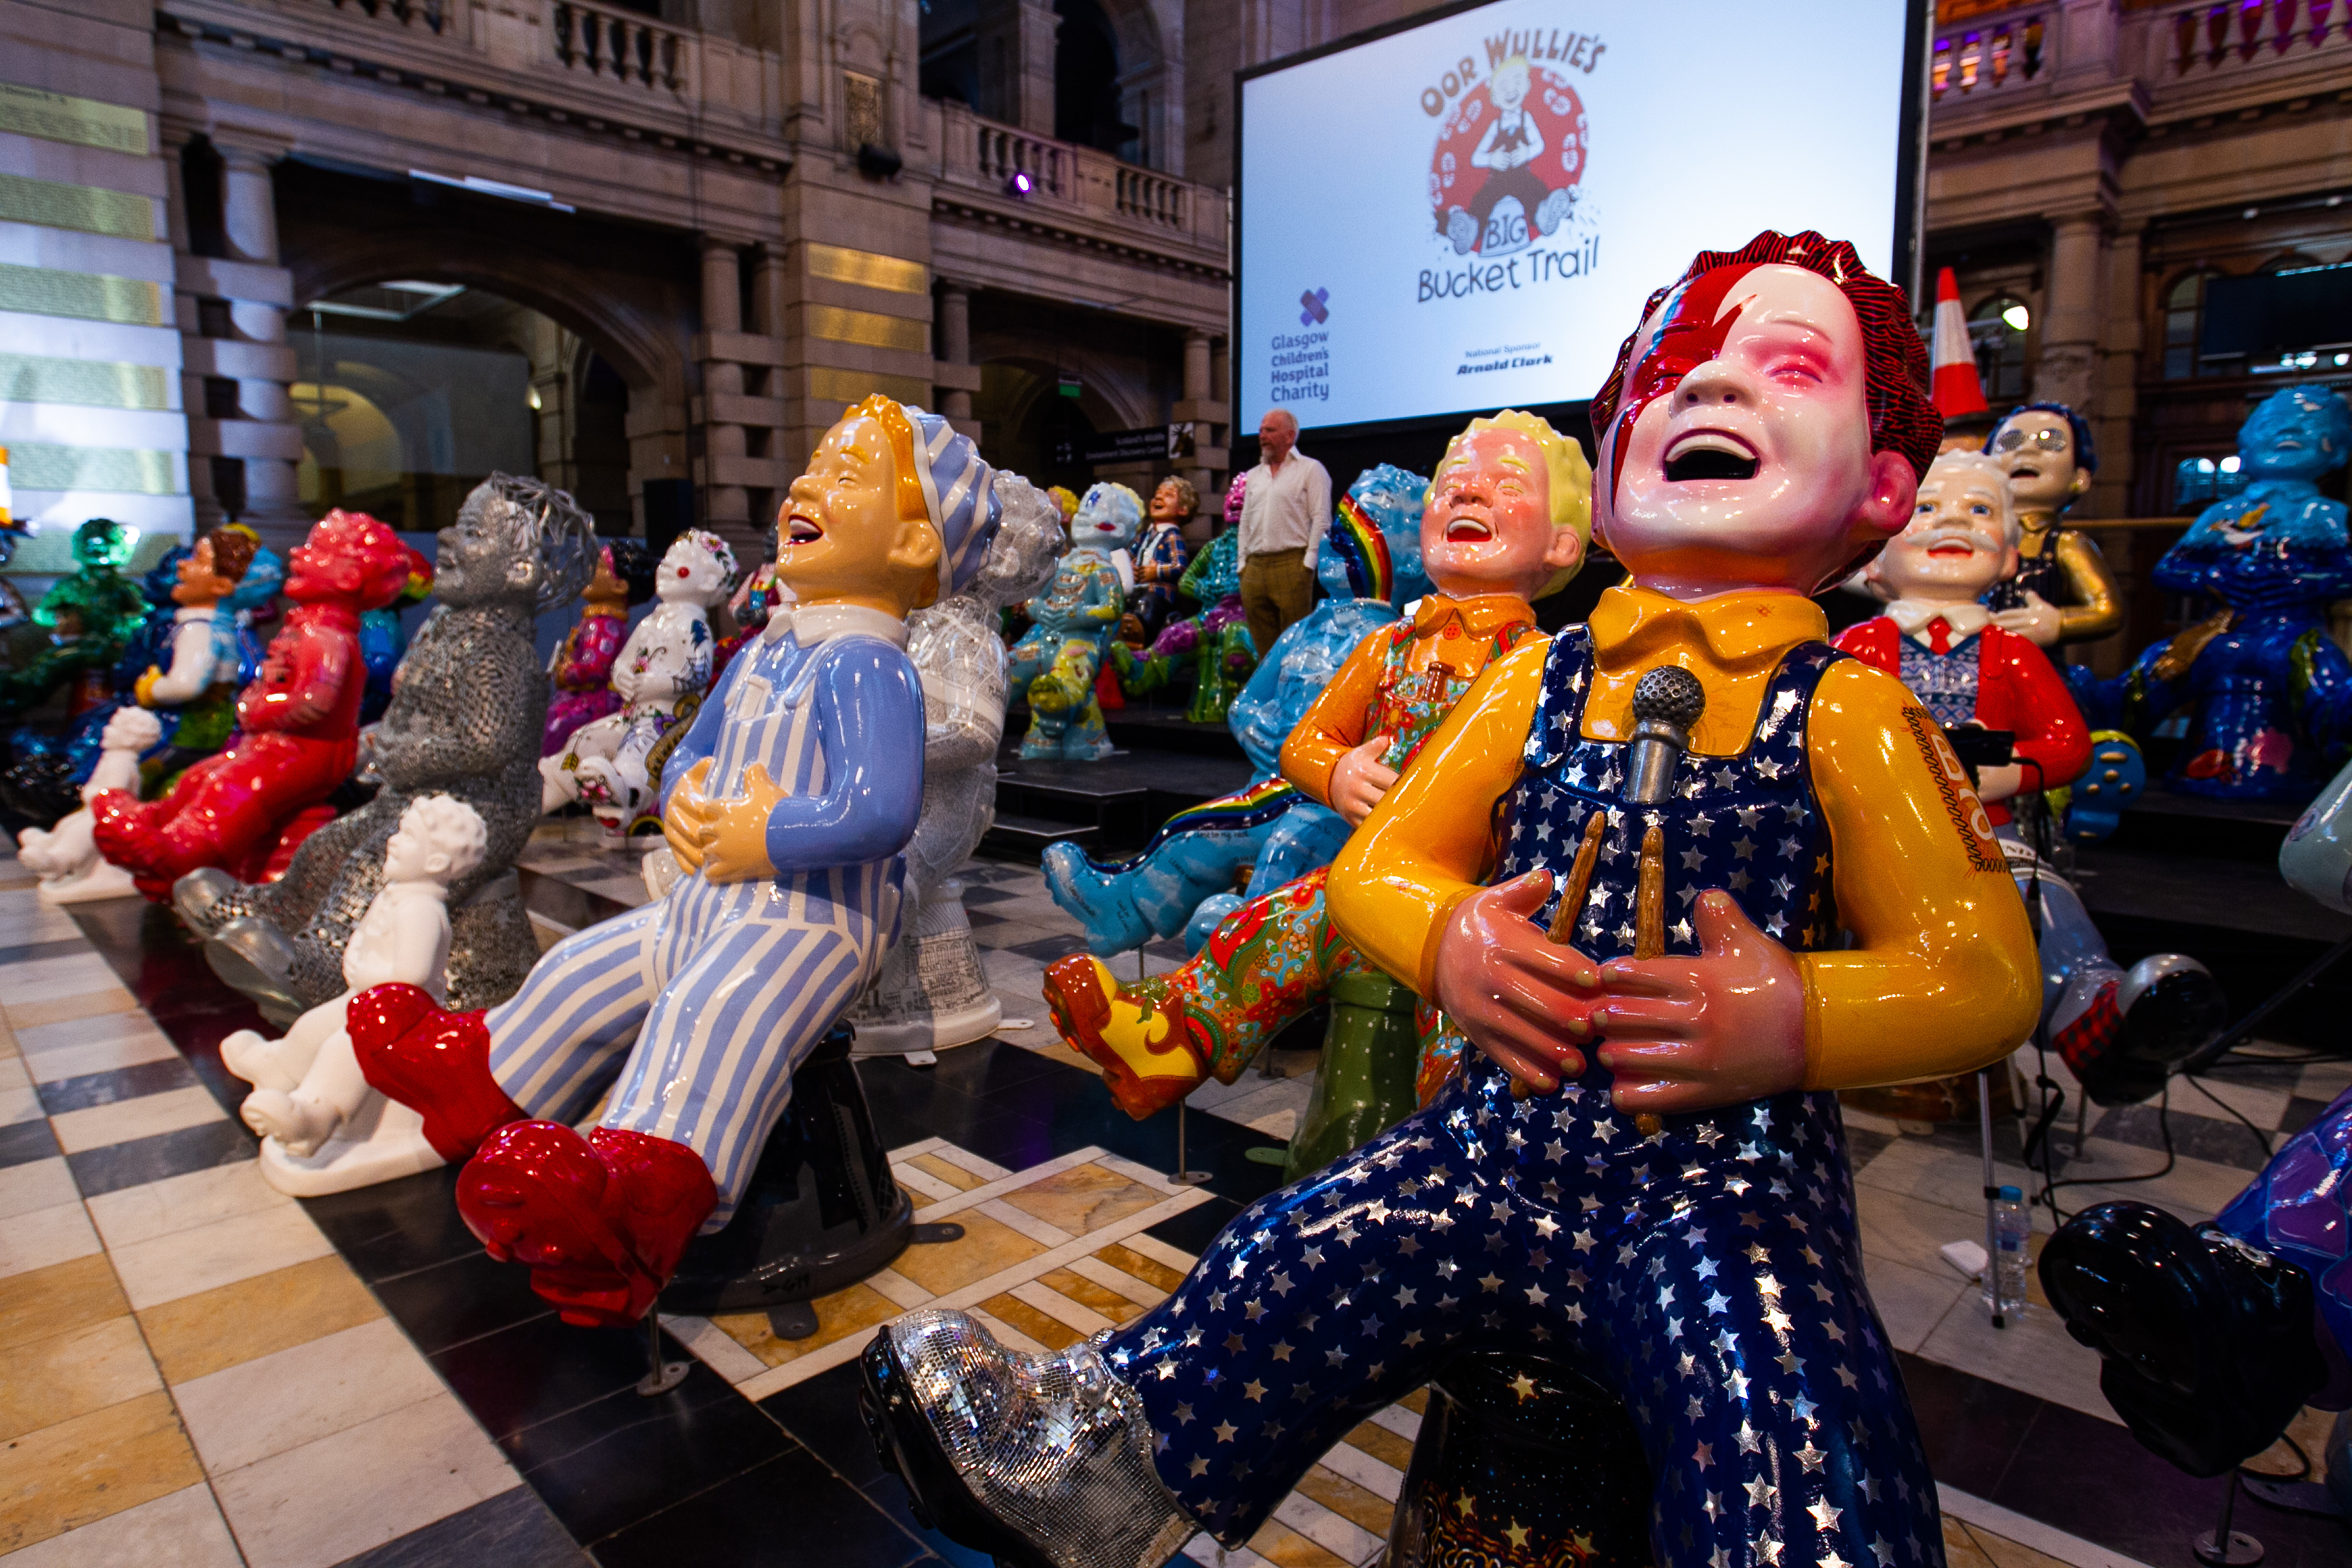 The Oor Wullie statues in Glasgow.